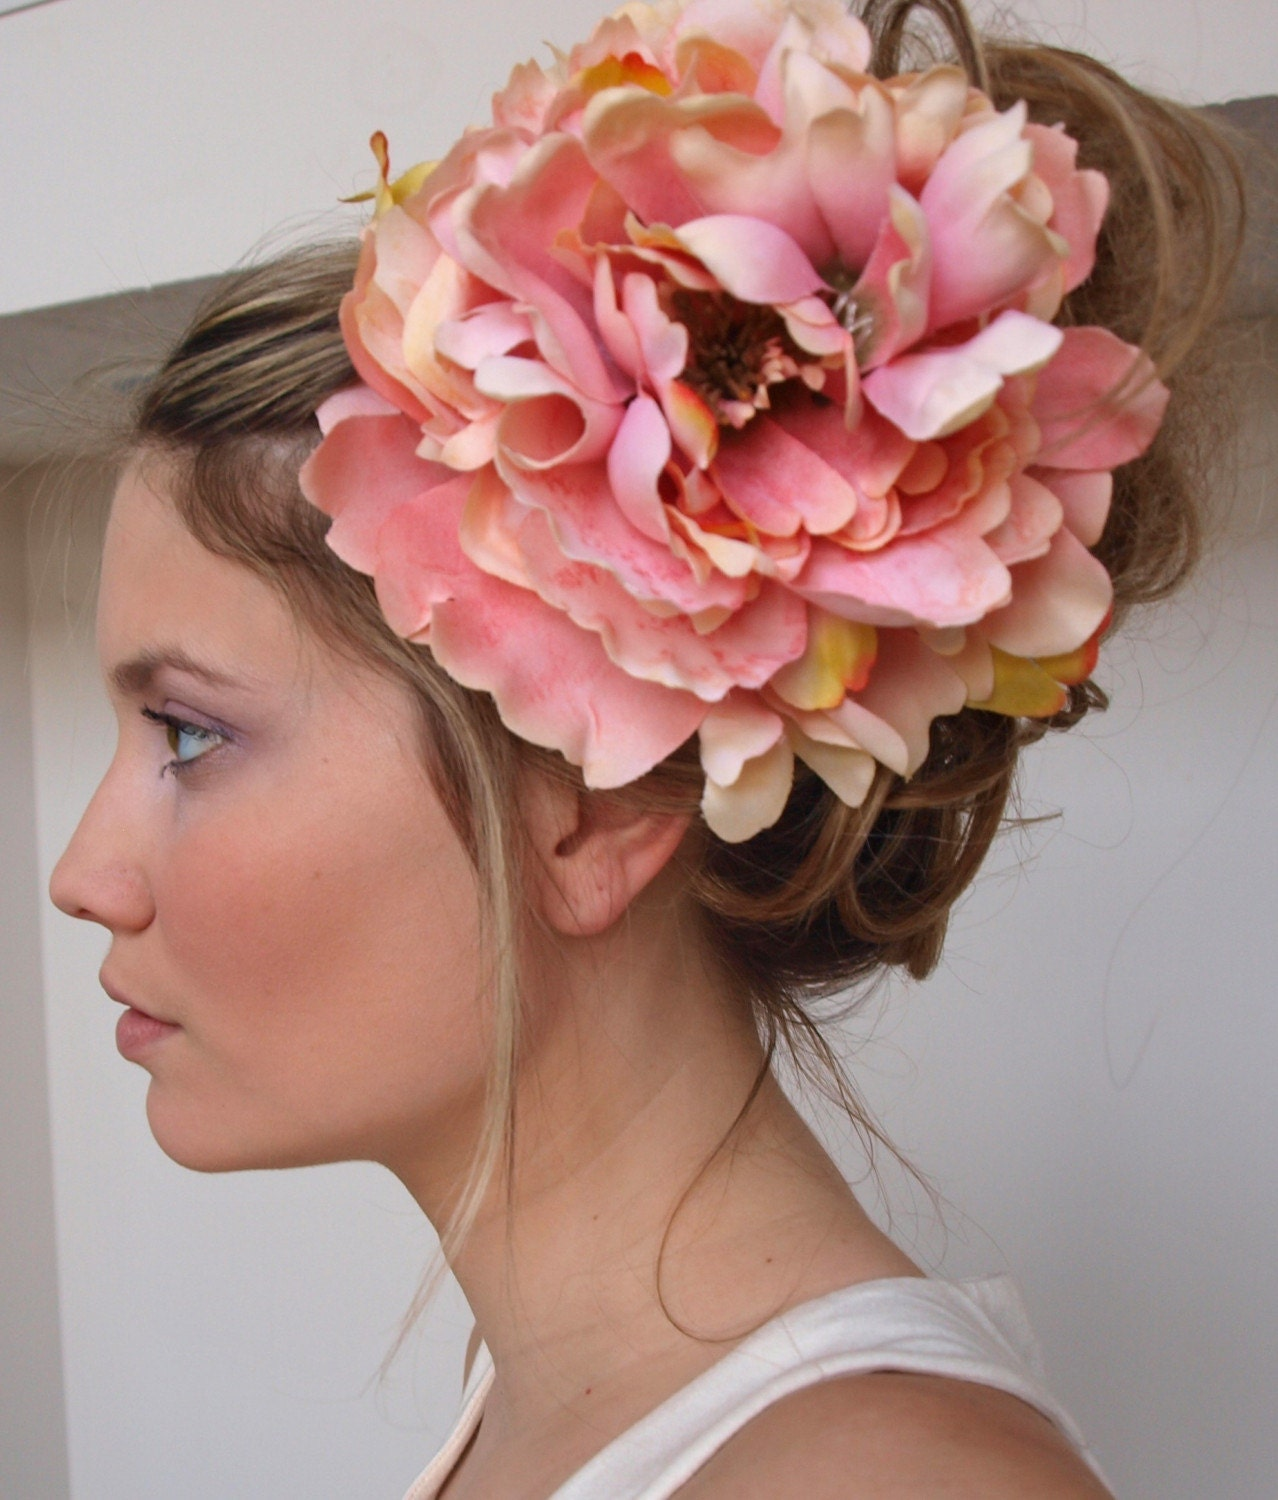 Our exclusive, in-house made Silk Flower Hair Clips are the perfect accessories to any outfit. Choose from our many Sexy Hair Accessories, Silk Flower Hair Clips, Hair Pins and Barrettes with Silk Orchids.